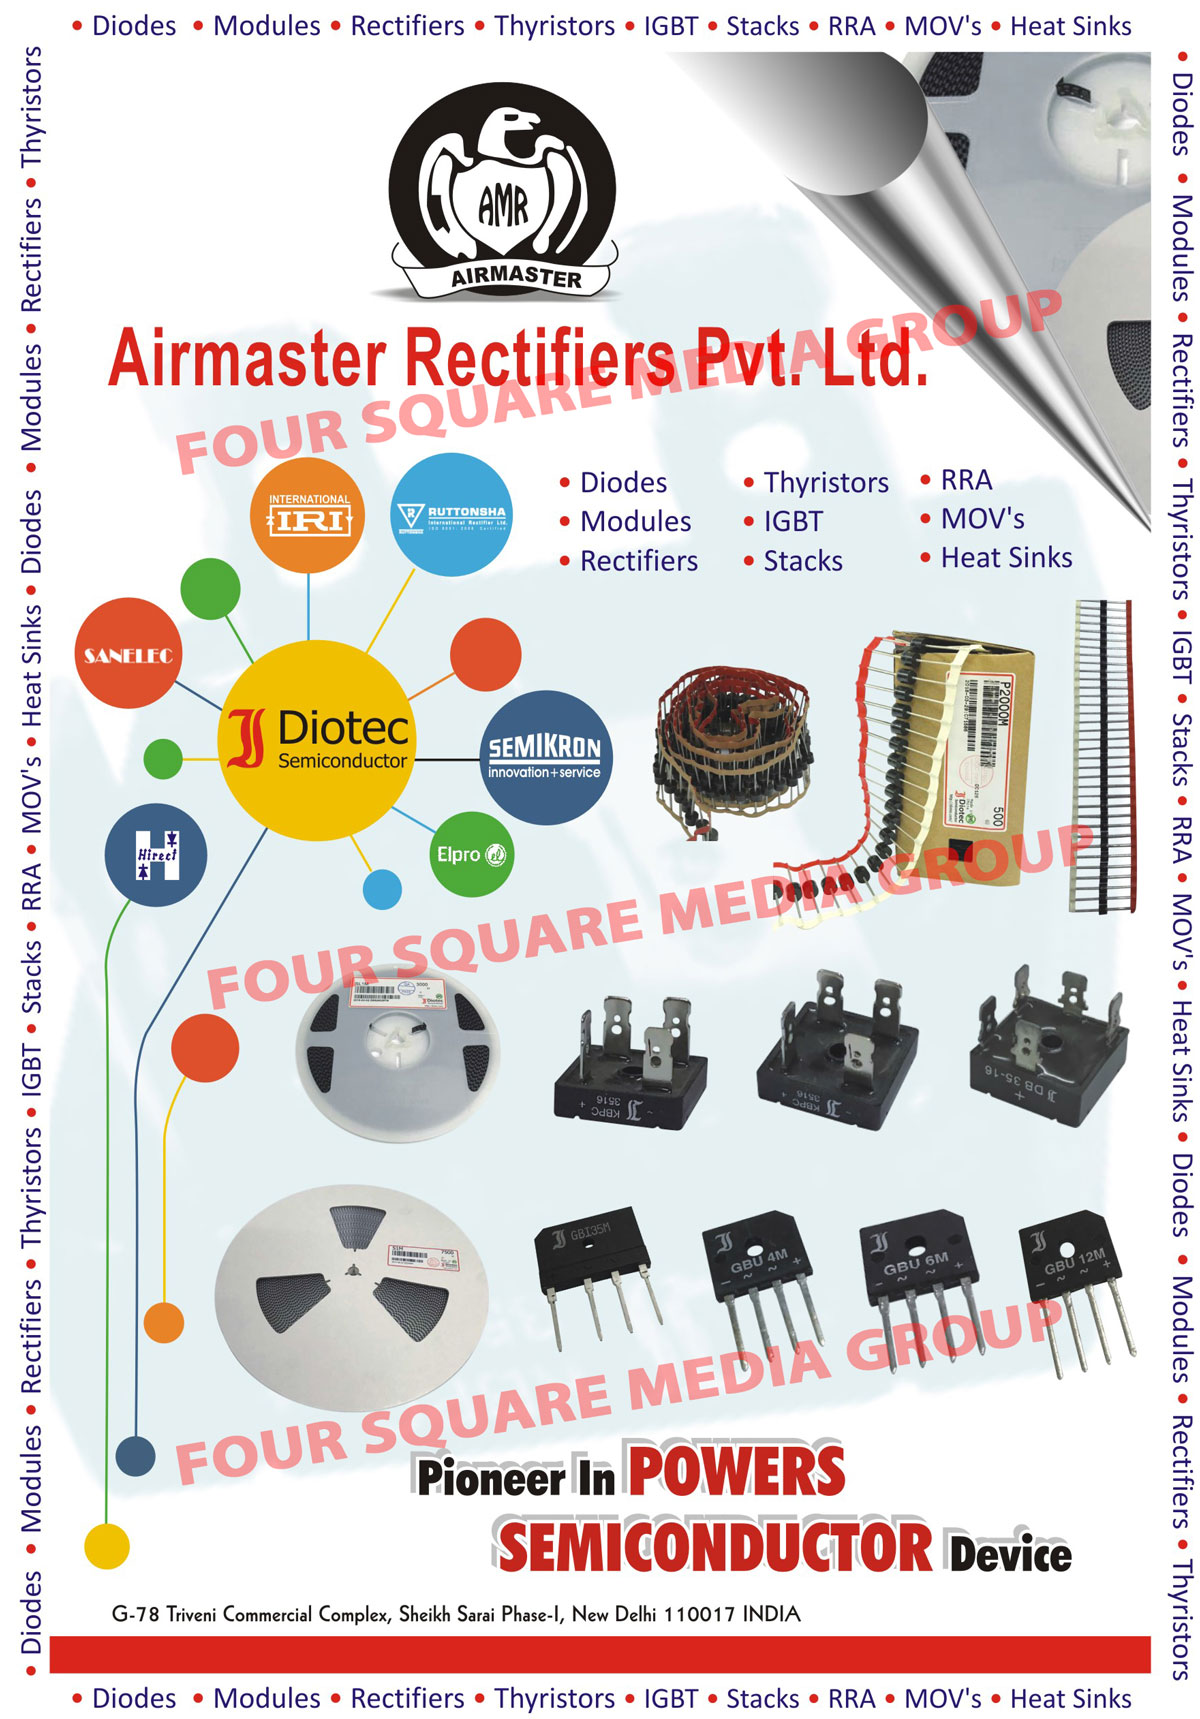 Power Semiconductor Devices, Diodes, Modules, Rectifiers, Thyristors, Igbt, Stacks, Heat Sinks, Power Diode Capsules, Bridge Rectifiers, Top Hat Diodes, Temperature Switches No/NC, Thyristor Modules, RRA, MOV